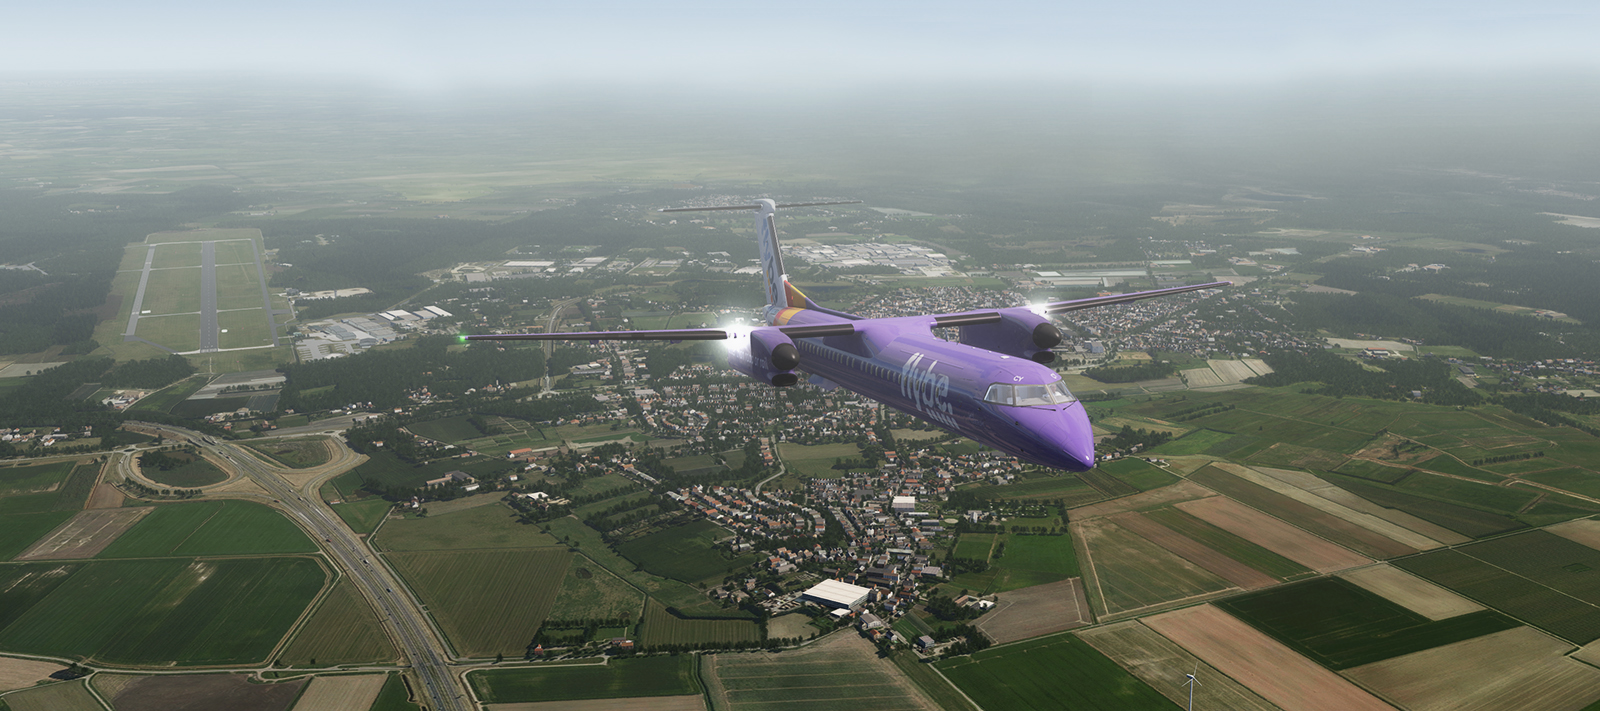 aerofly_fs_2_screenshot_21_20190317-2009